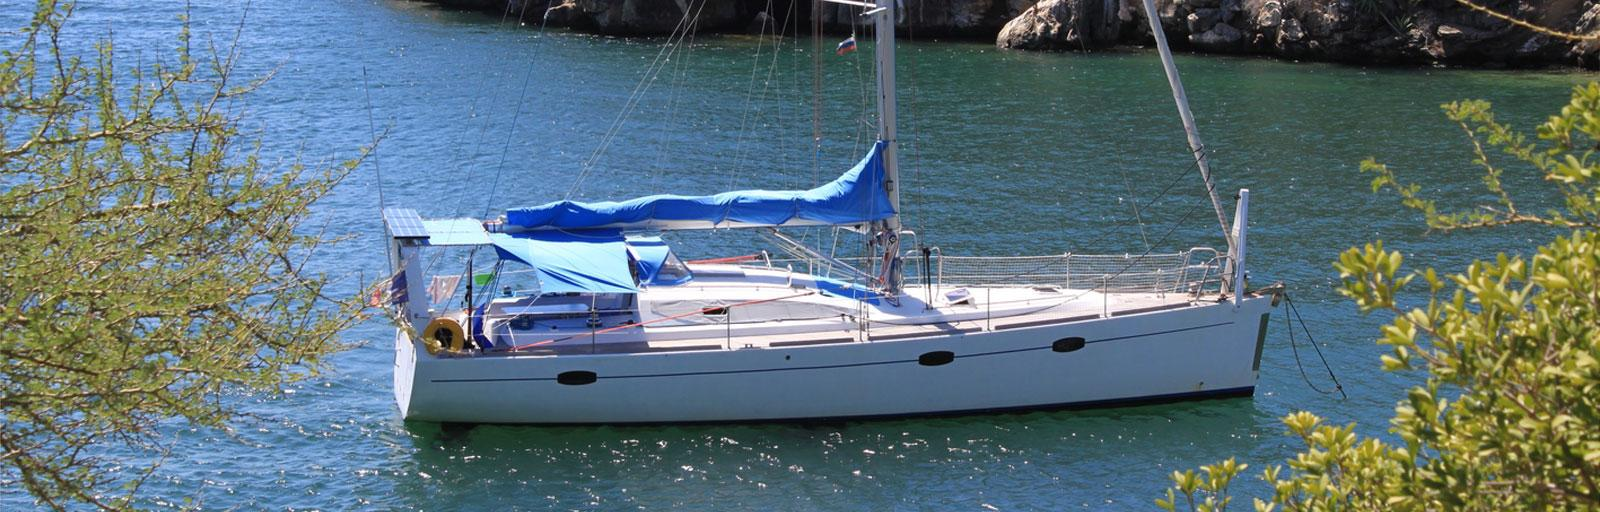 AYC Yachtbrokers - PLAN LOMBARD RUN 45 DS